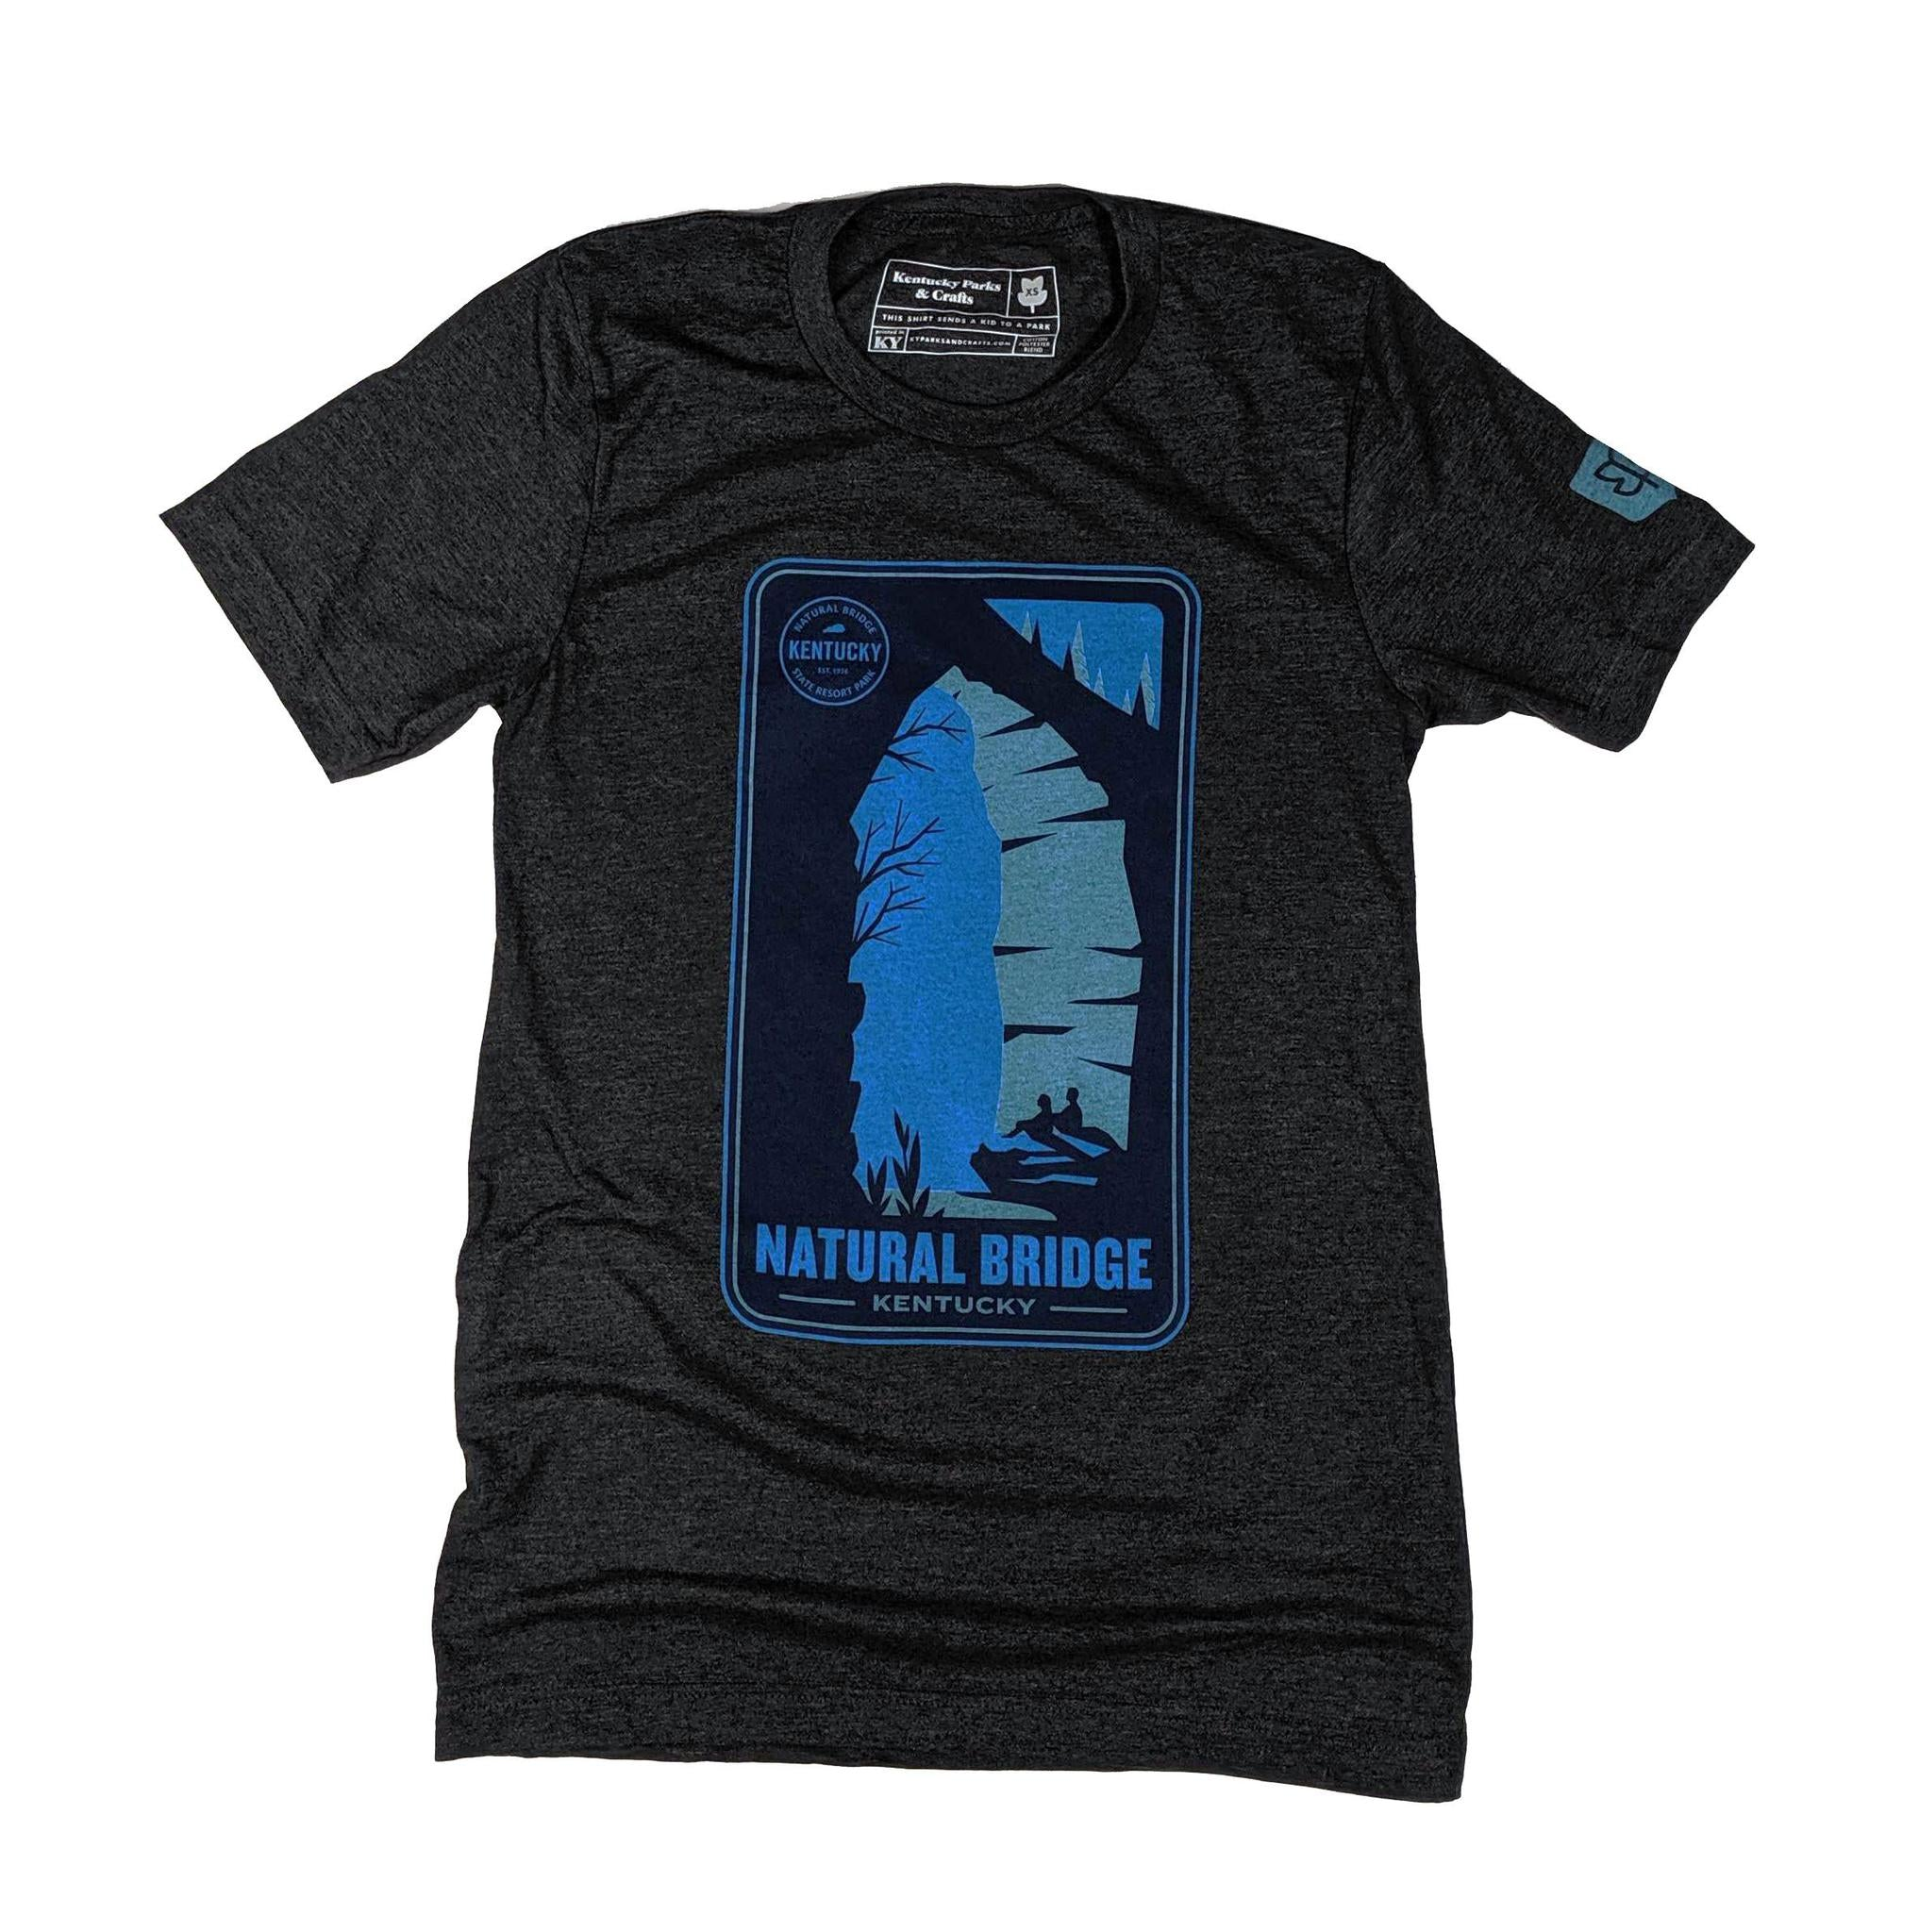 Natural Bridge State Park T-Shirt-Parks-KY for KY Store